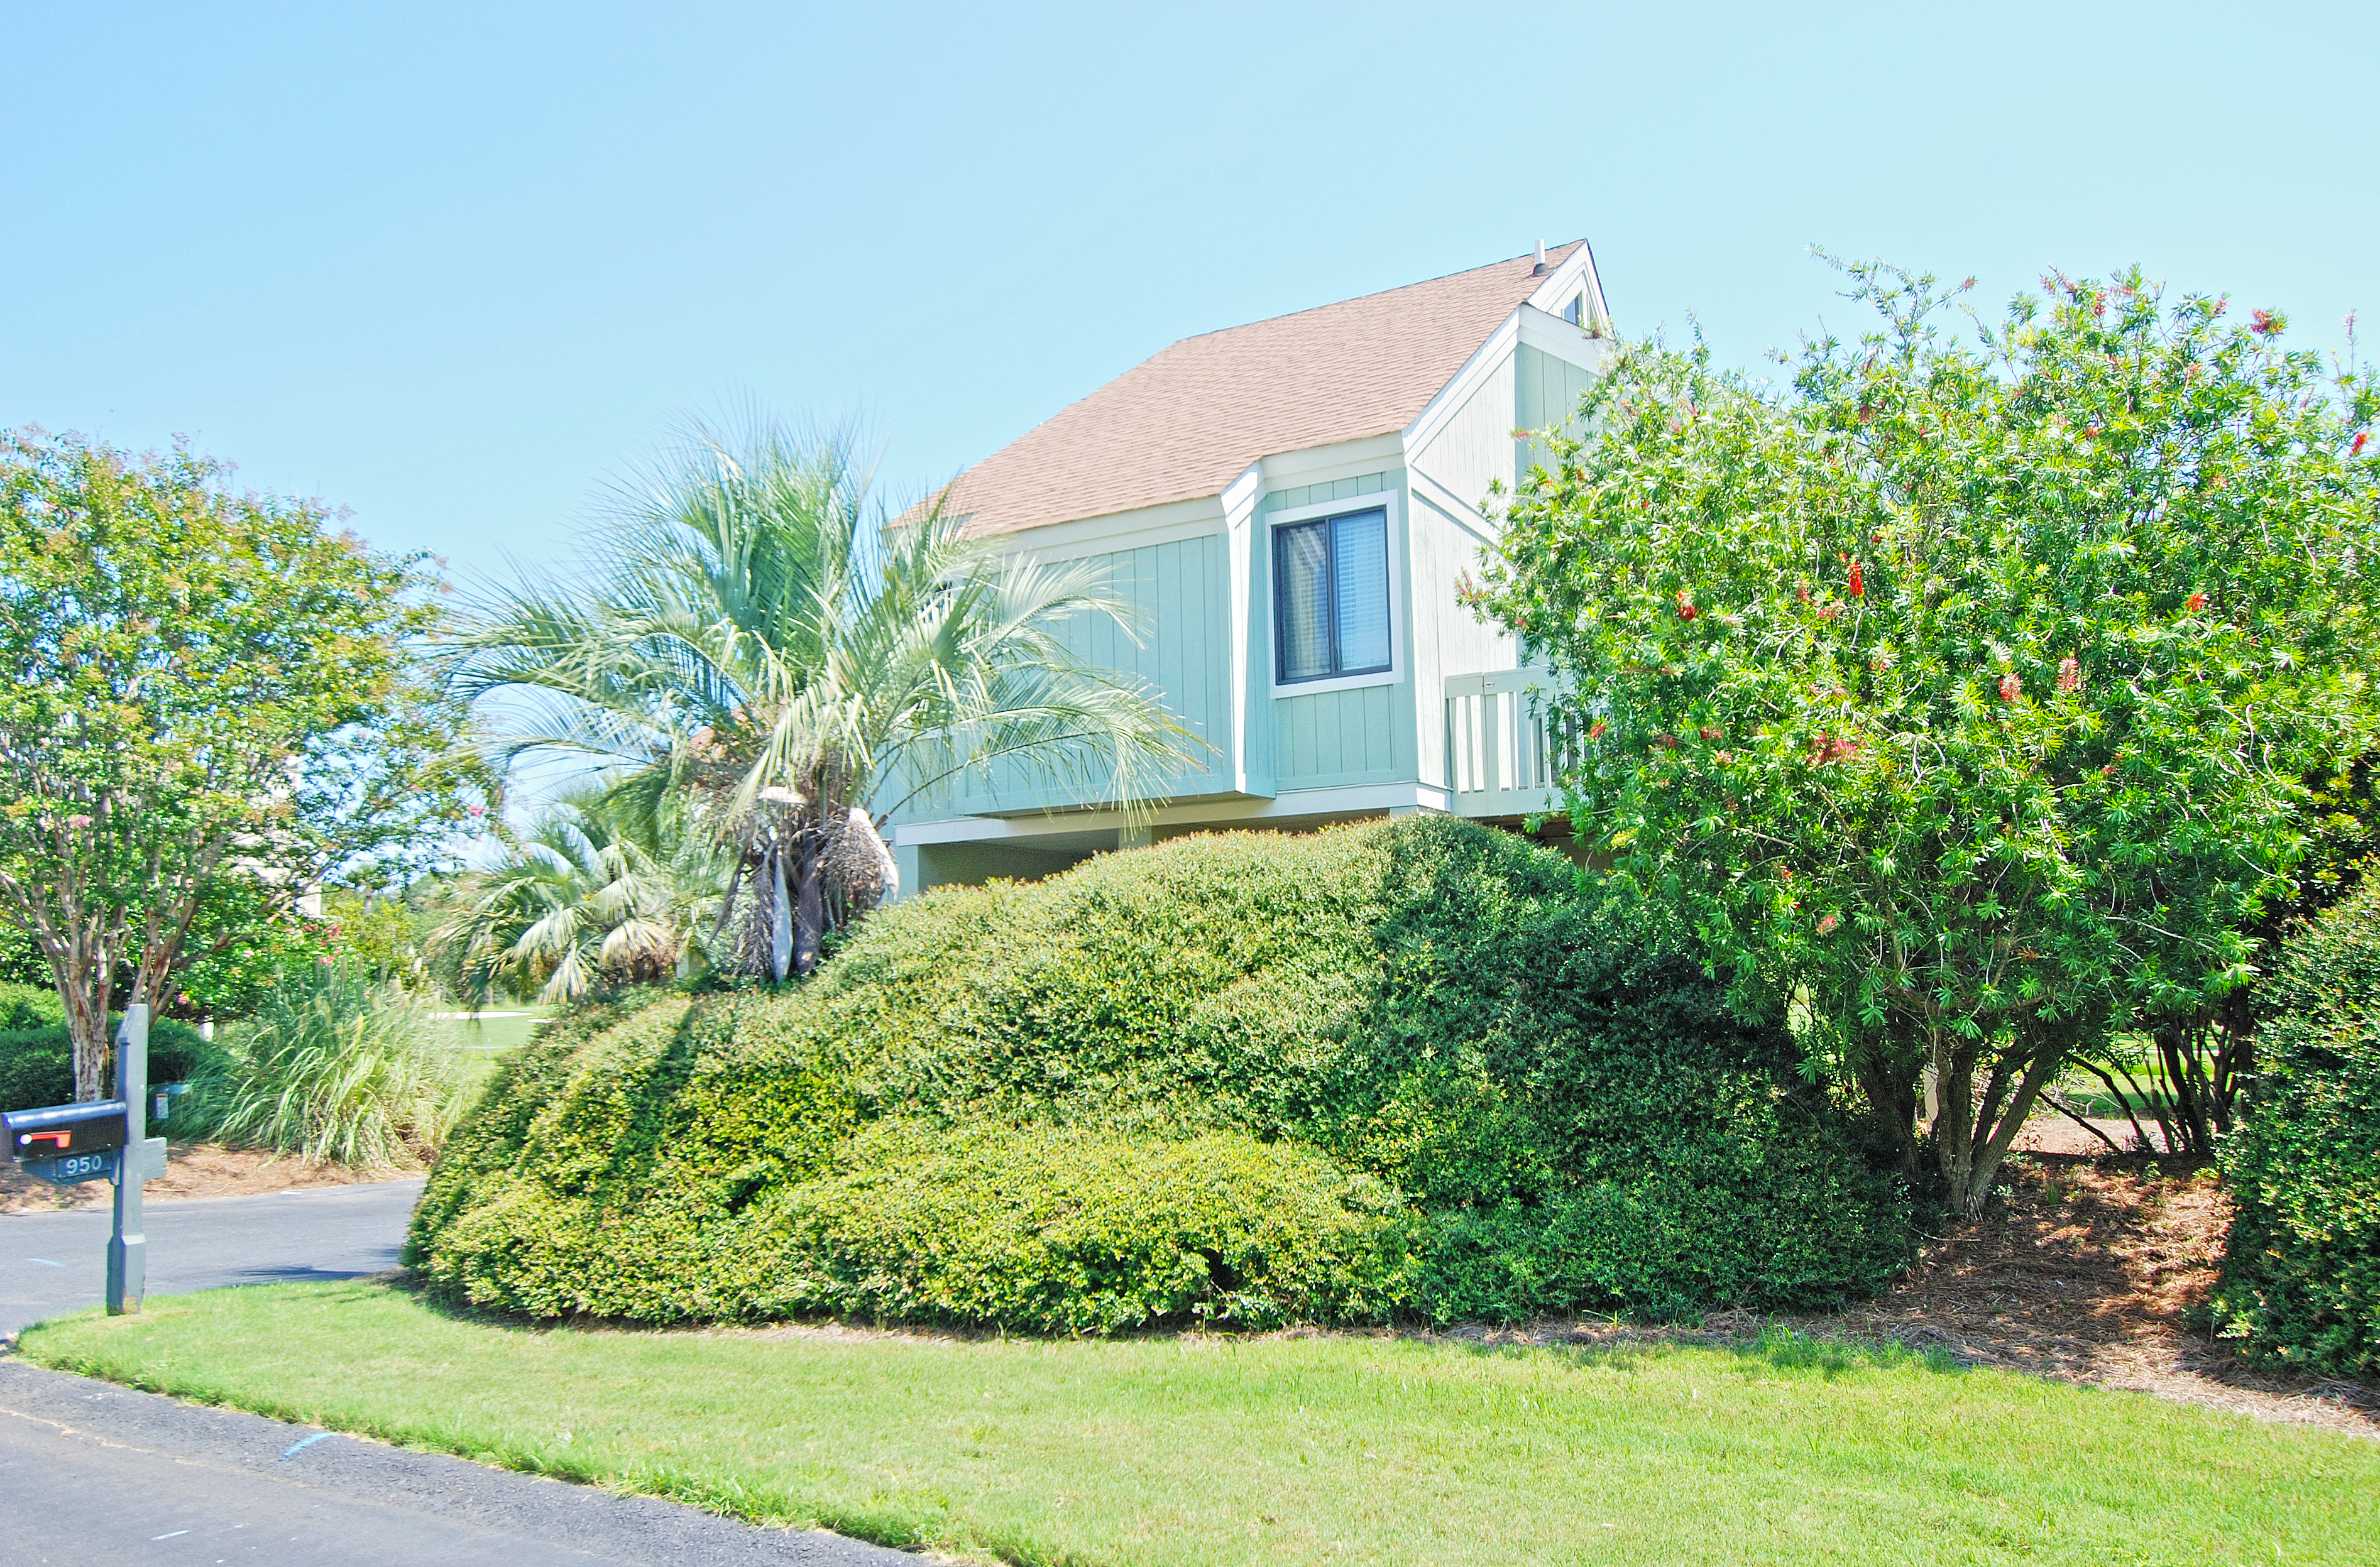 This beautiful Sealoft Villa is an easy walk to the beach and neighborhood pool!